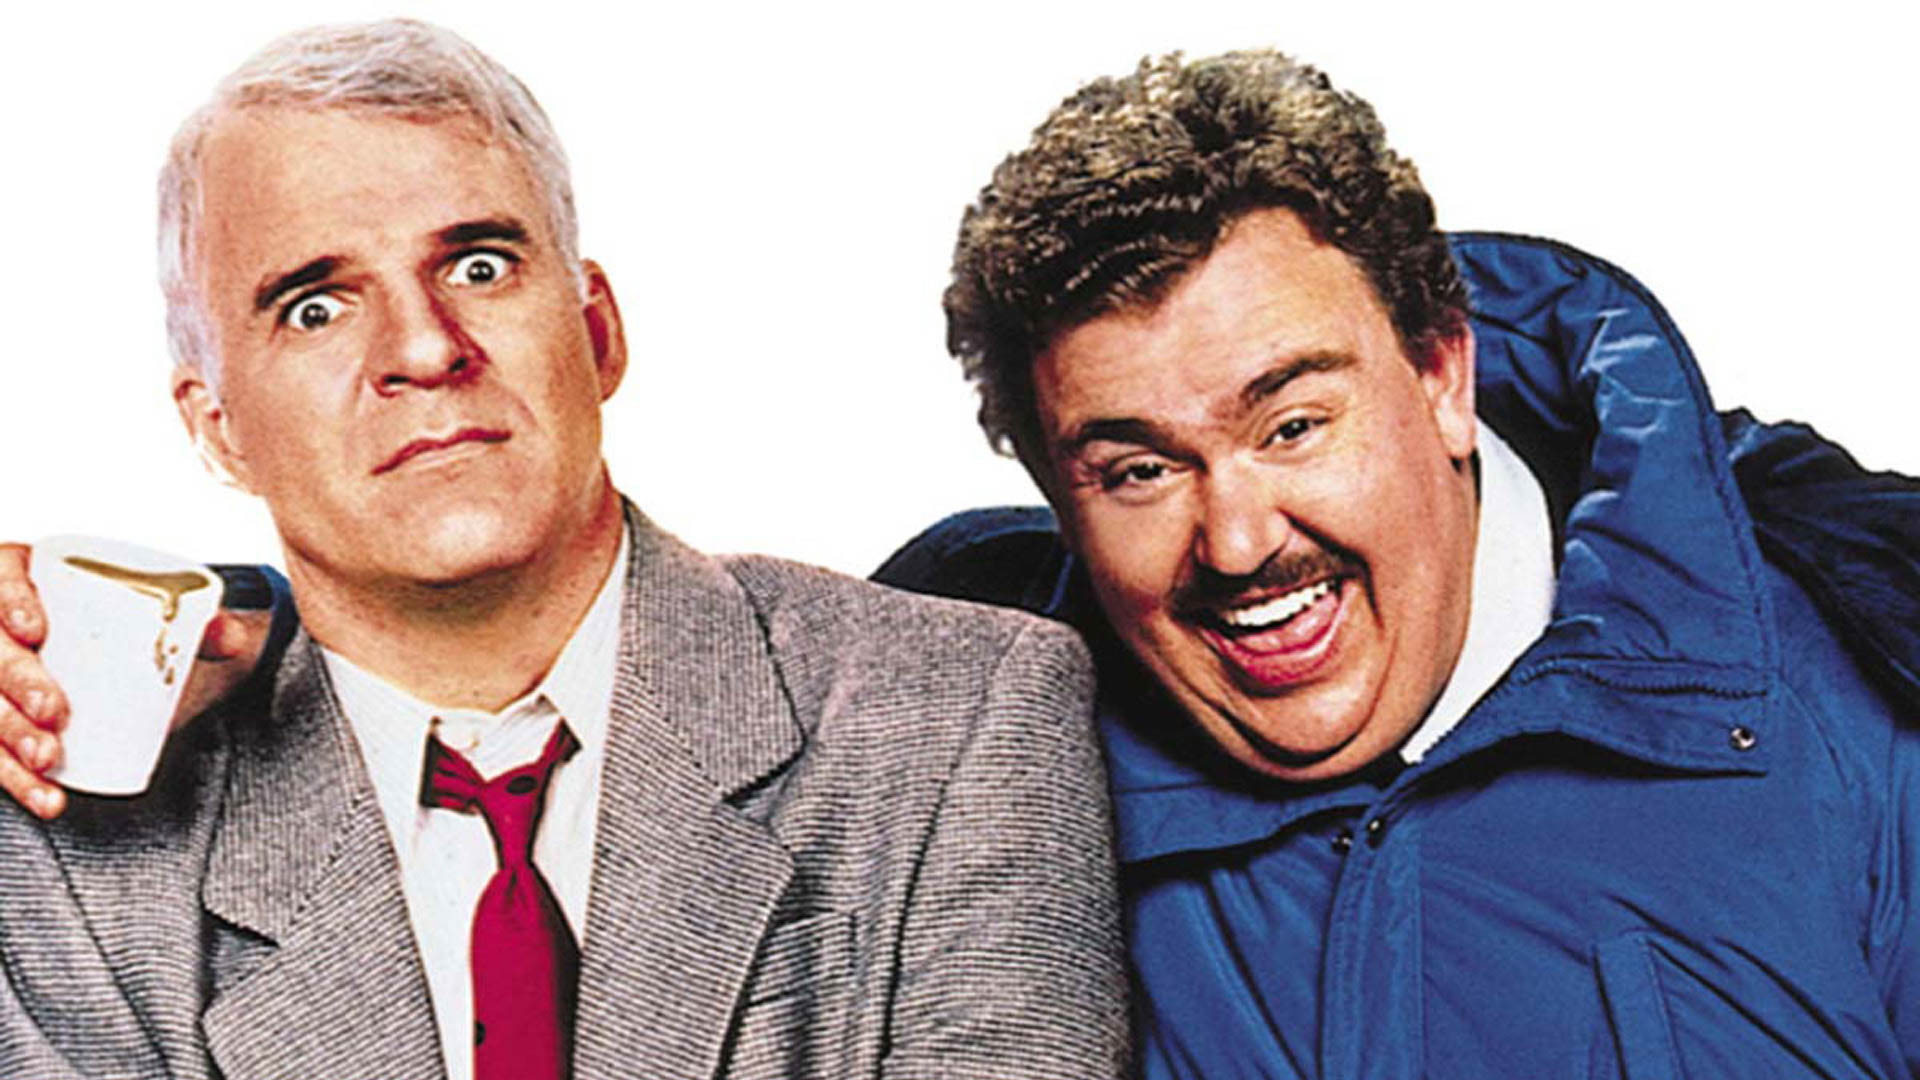 Prime Video: Planes, Trains and Automobiles